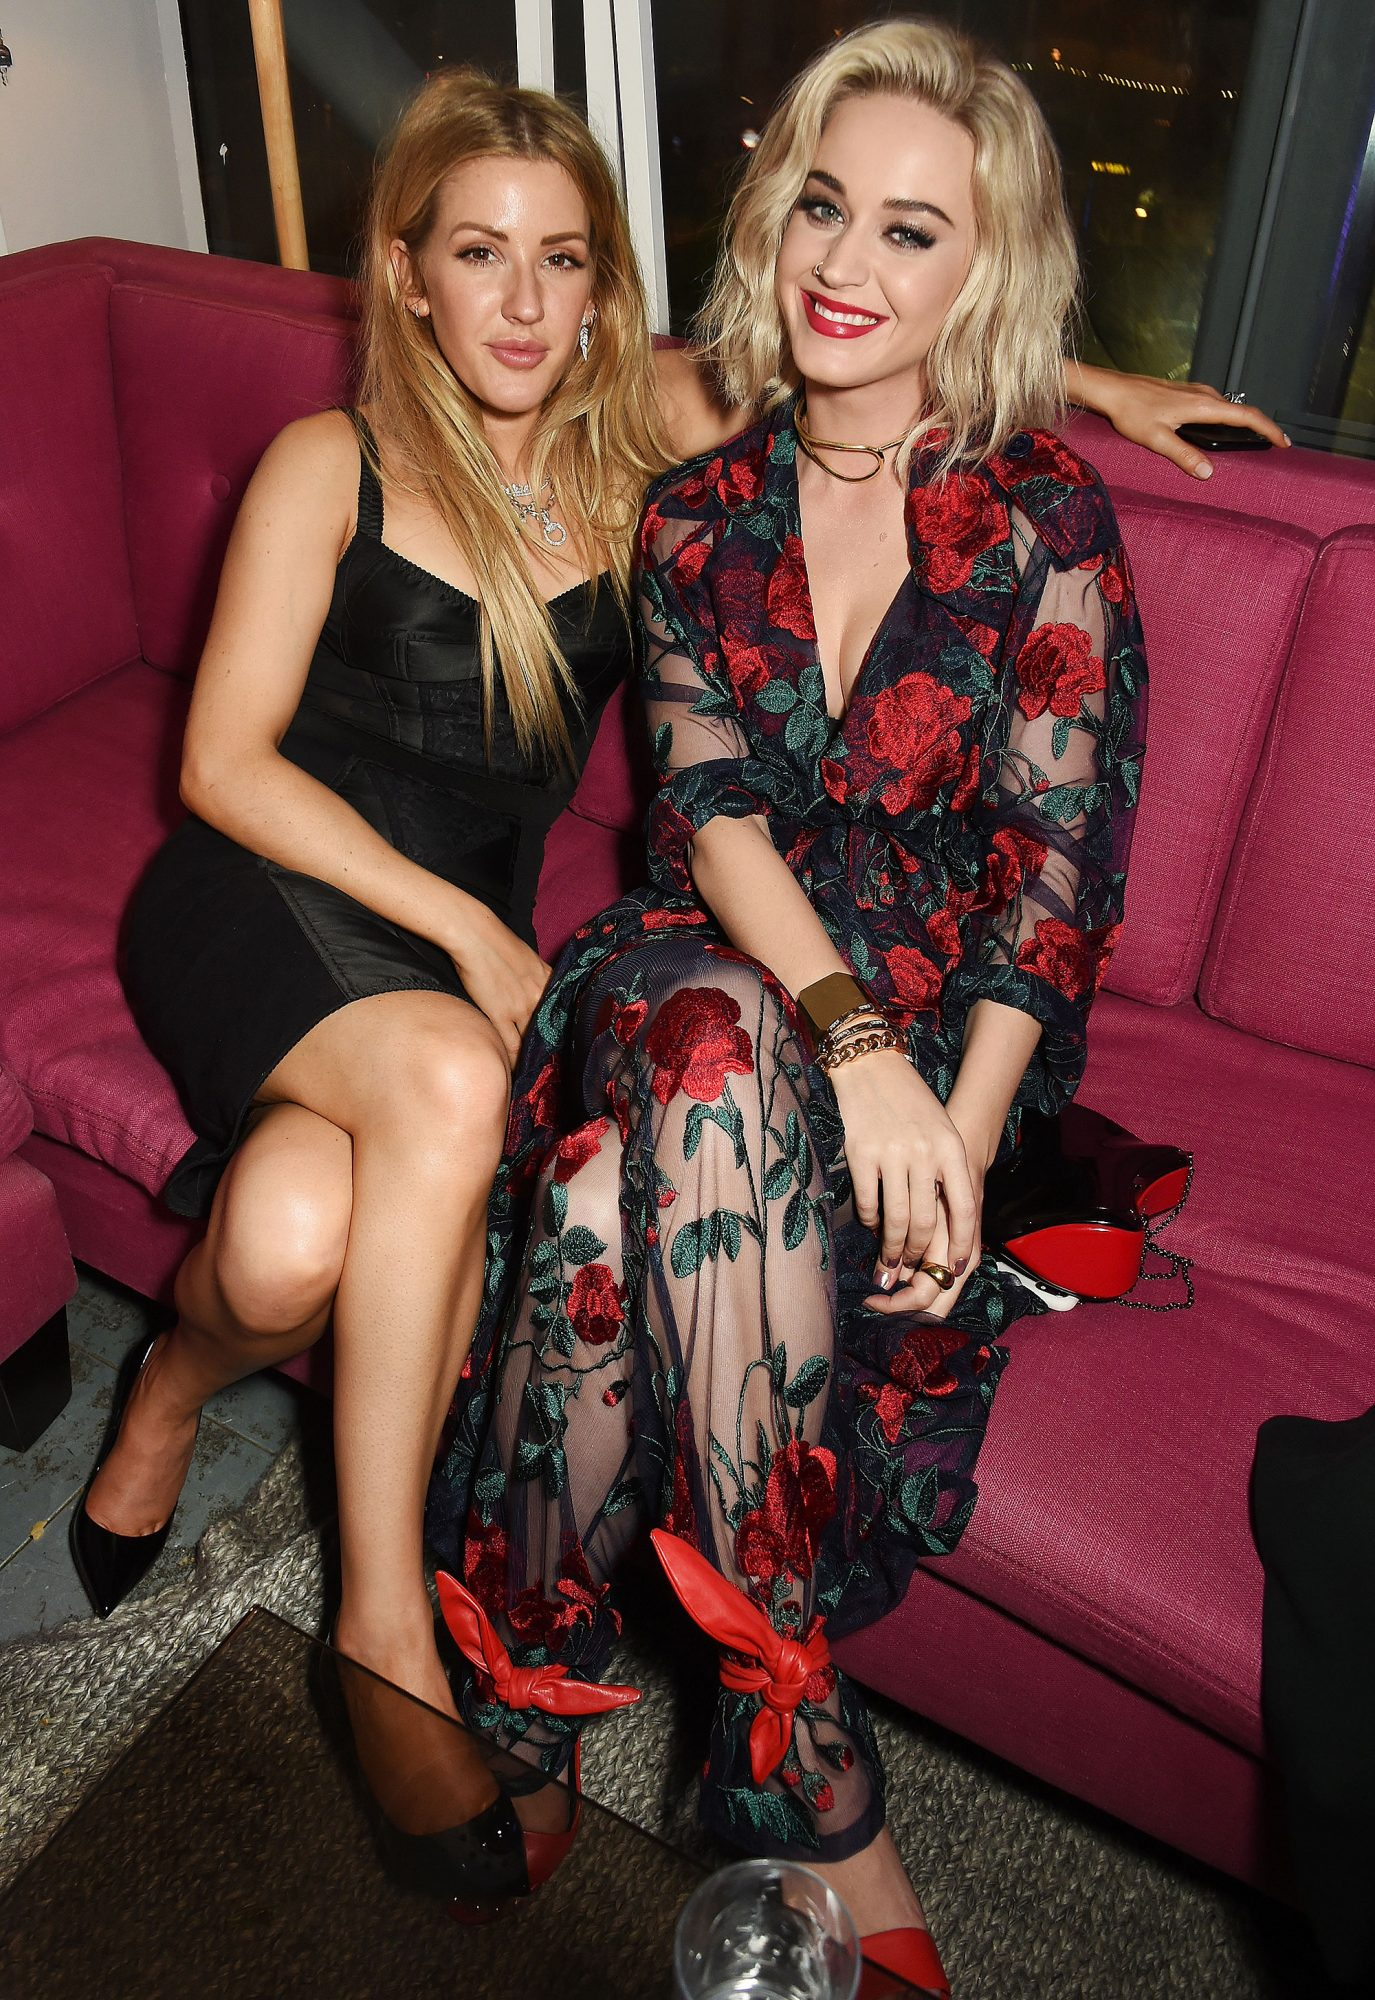 LONDON, ENGLAND - FEBRUARY 22: Ellie Goulding and Katy Perry attend (R) the Universal Music BRIT Awards After-Party 2017 hosted by Soho House and BACARDê at 180 The Strand on February 22, 2017 in London, England. (Photo by David M. Benett/Dave Benett/ Getty Images for Universal, Soho House & Bacardi Rum )